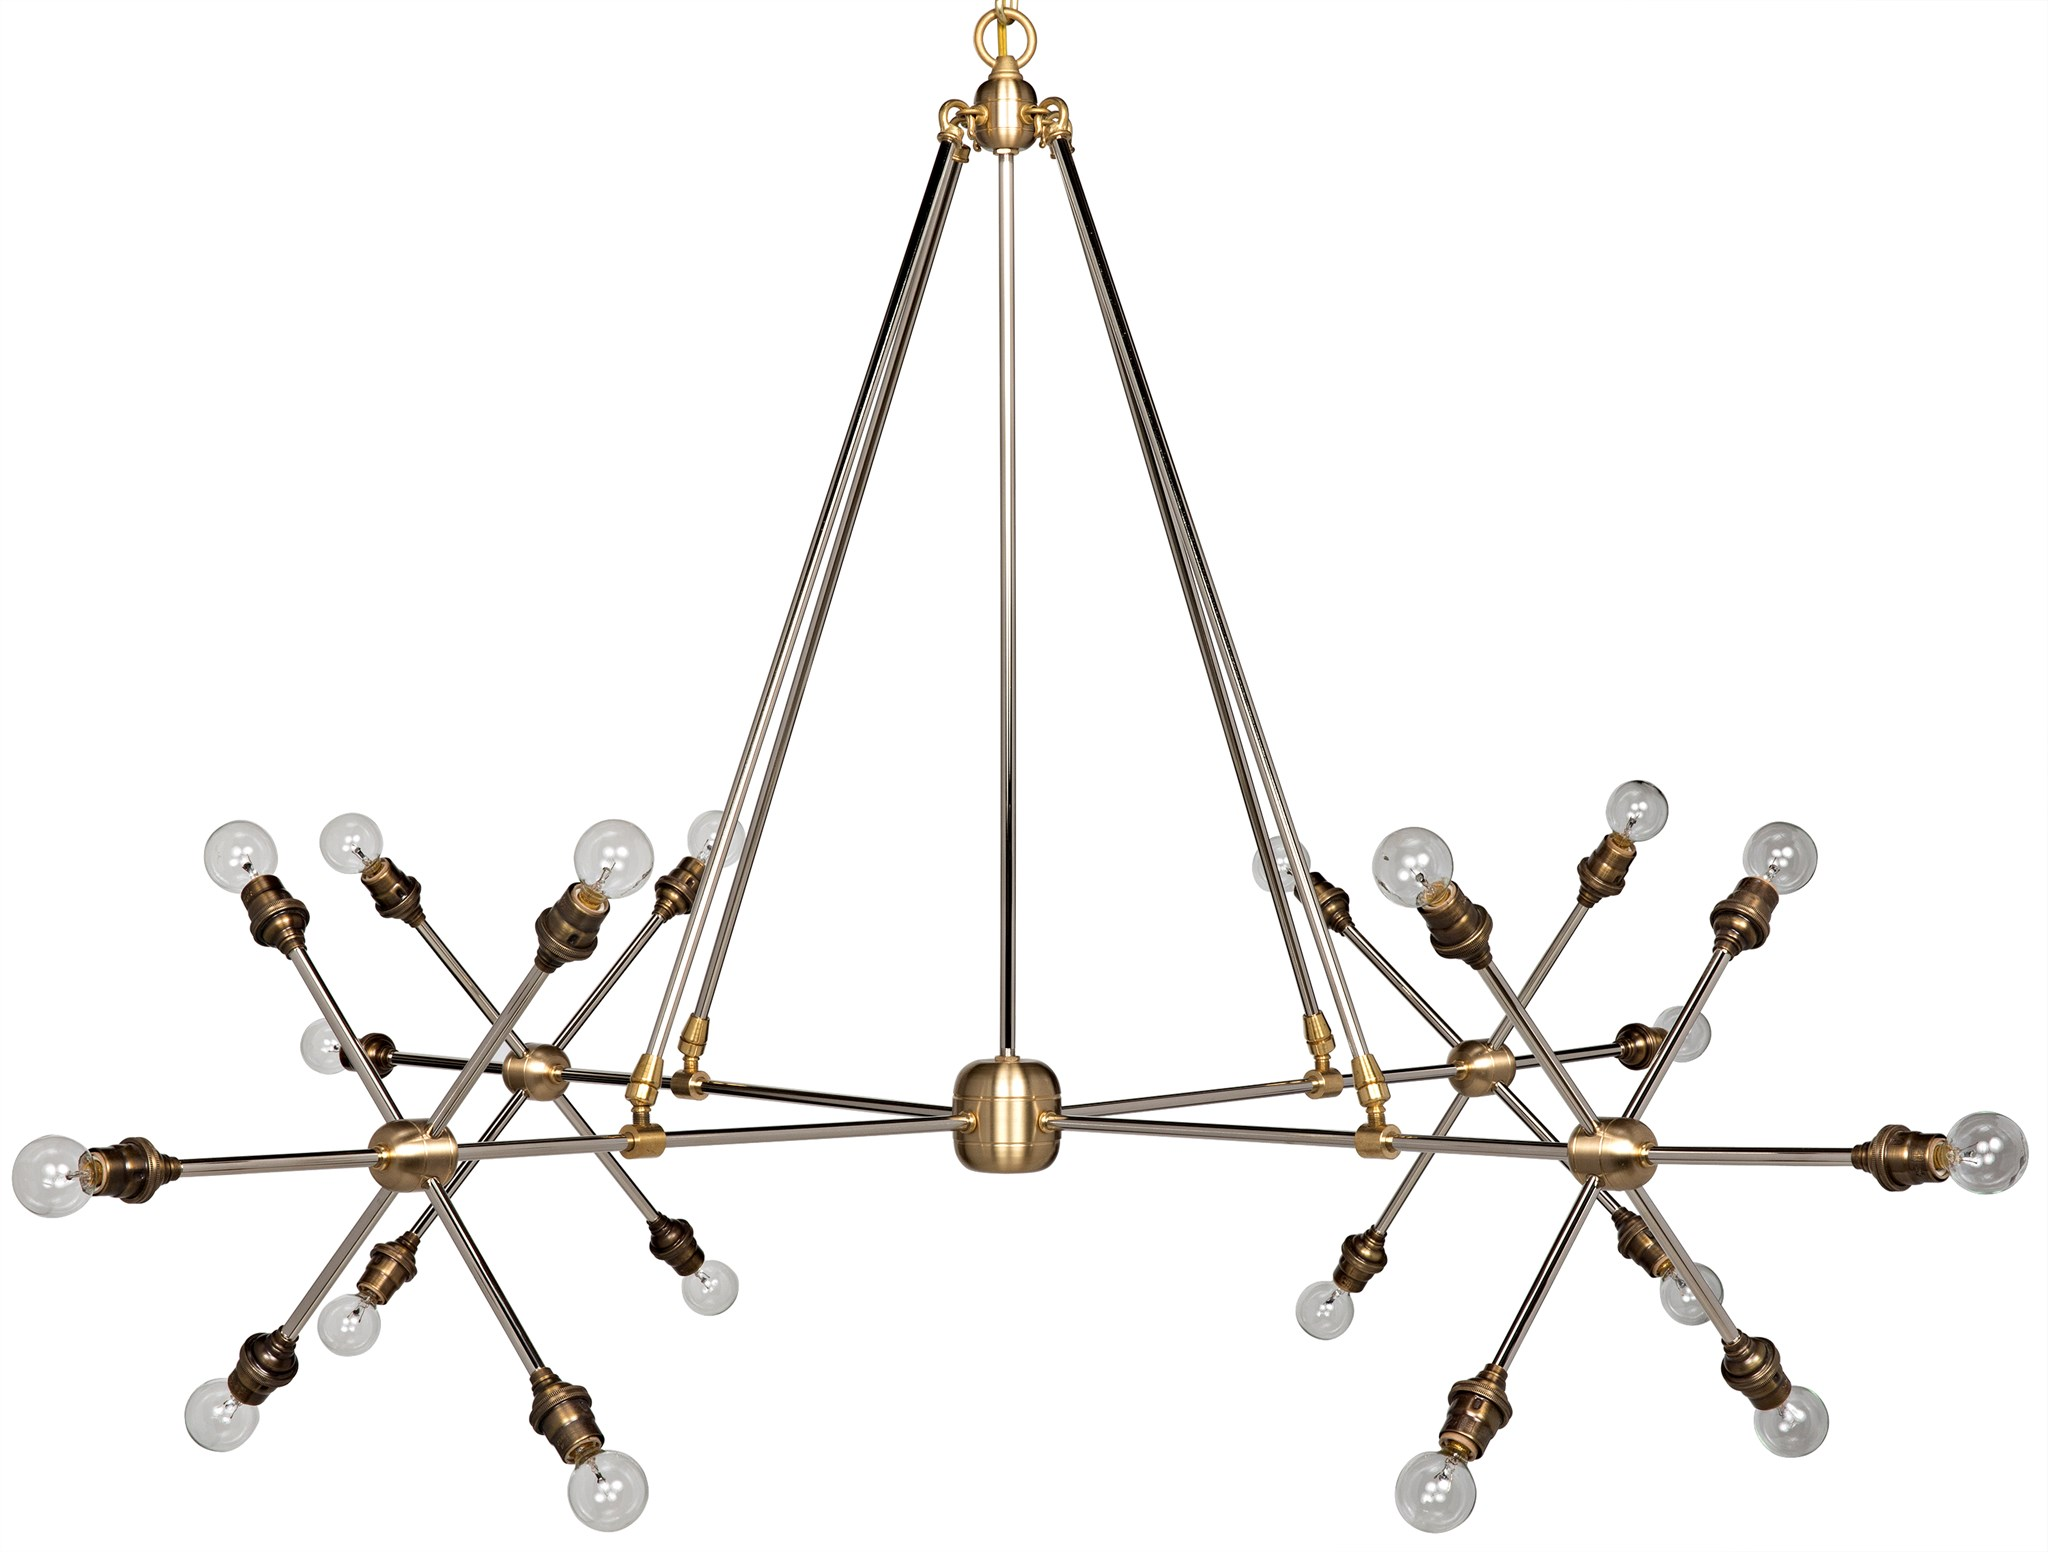 light italian in print chandelier vetrina nella lights glass white designer